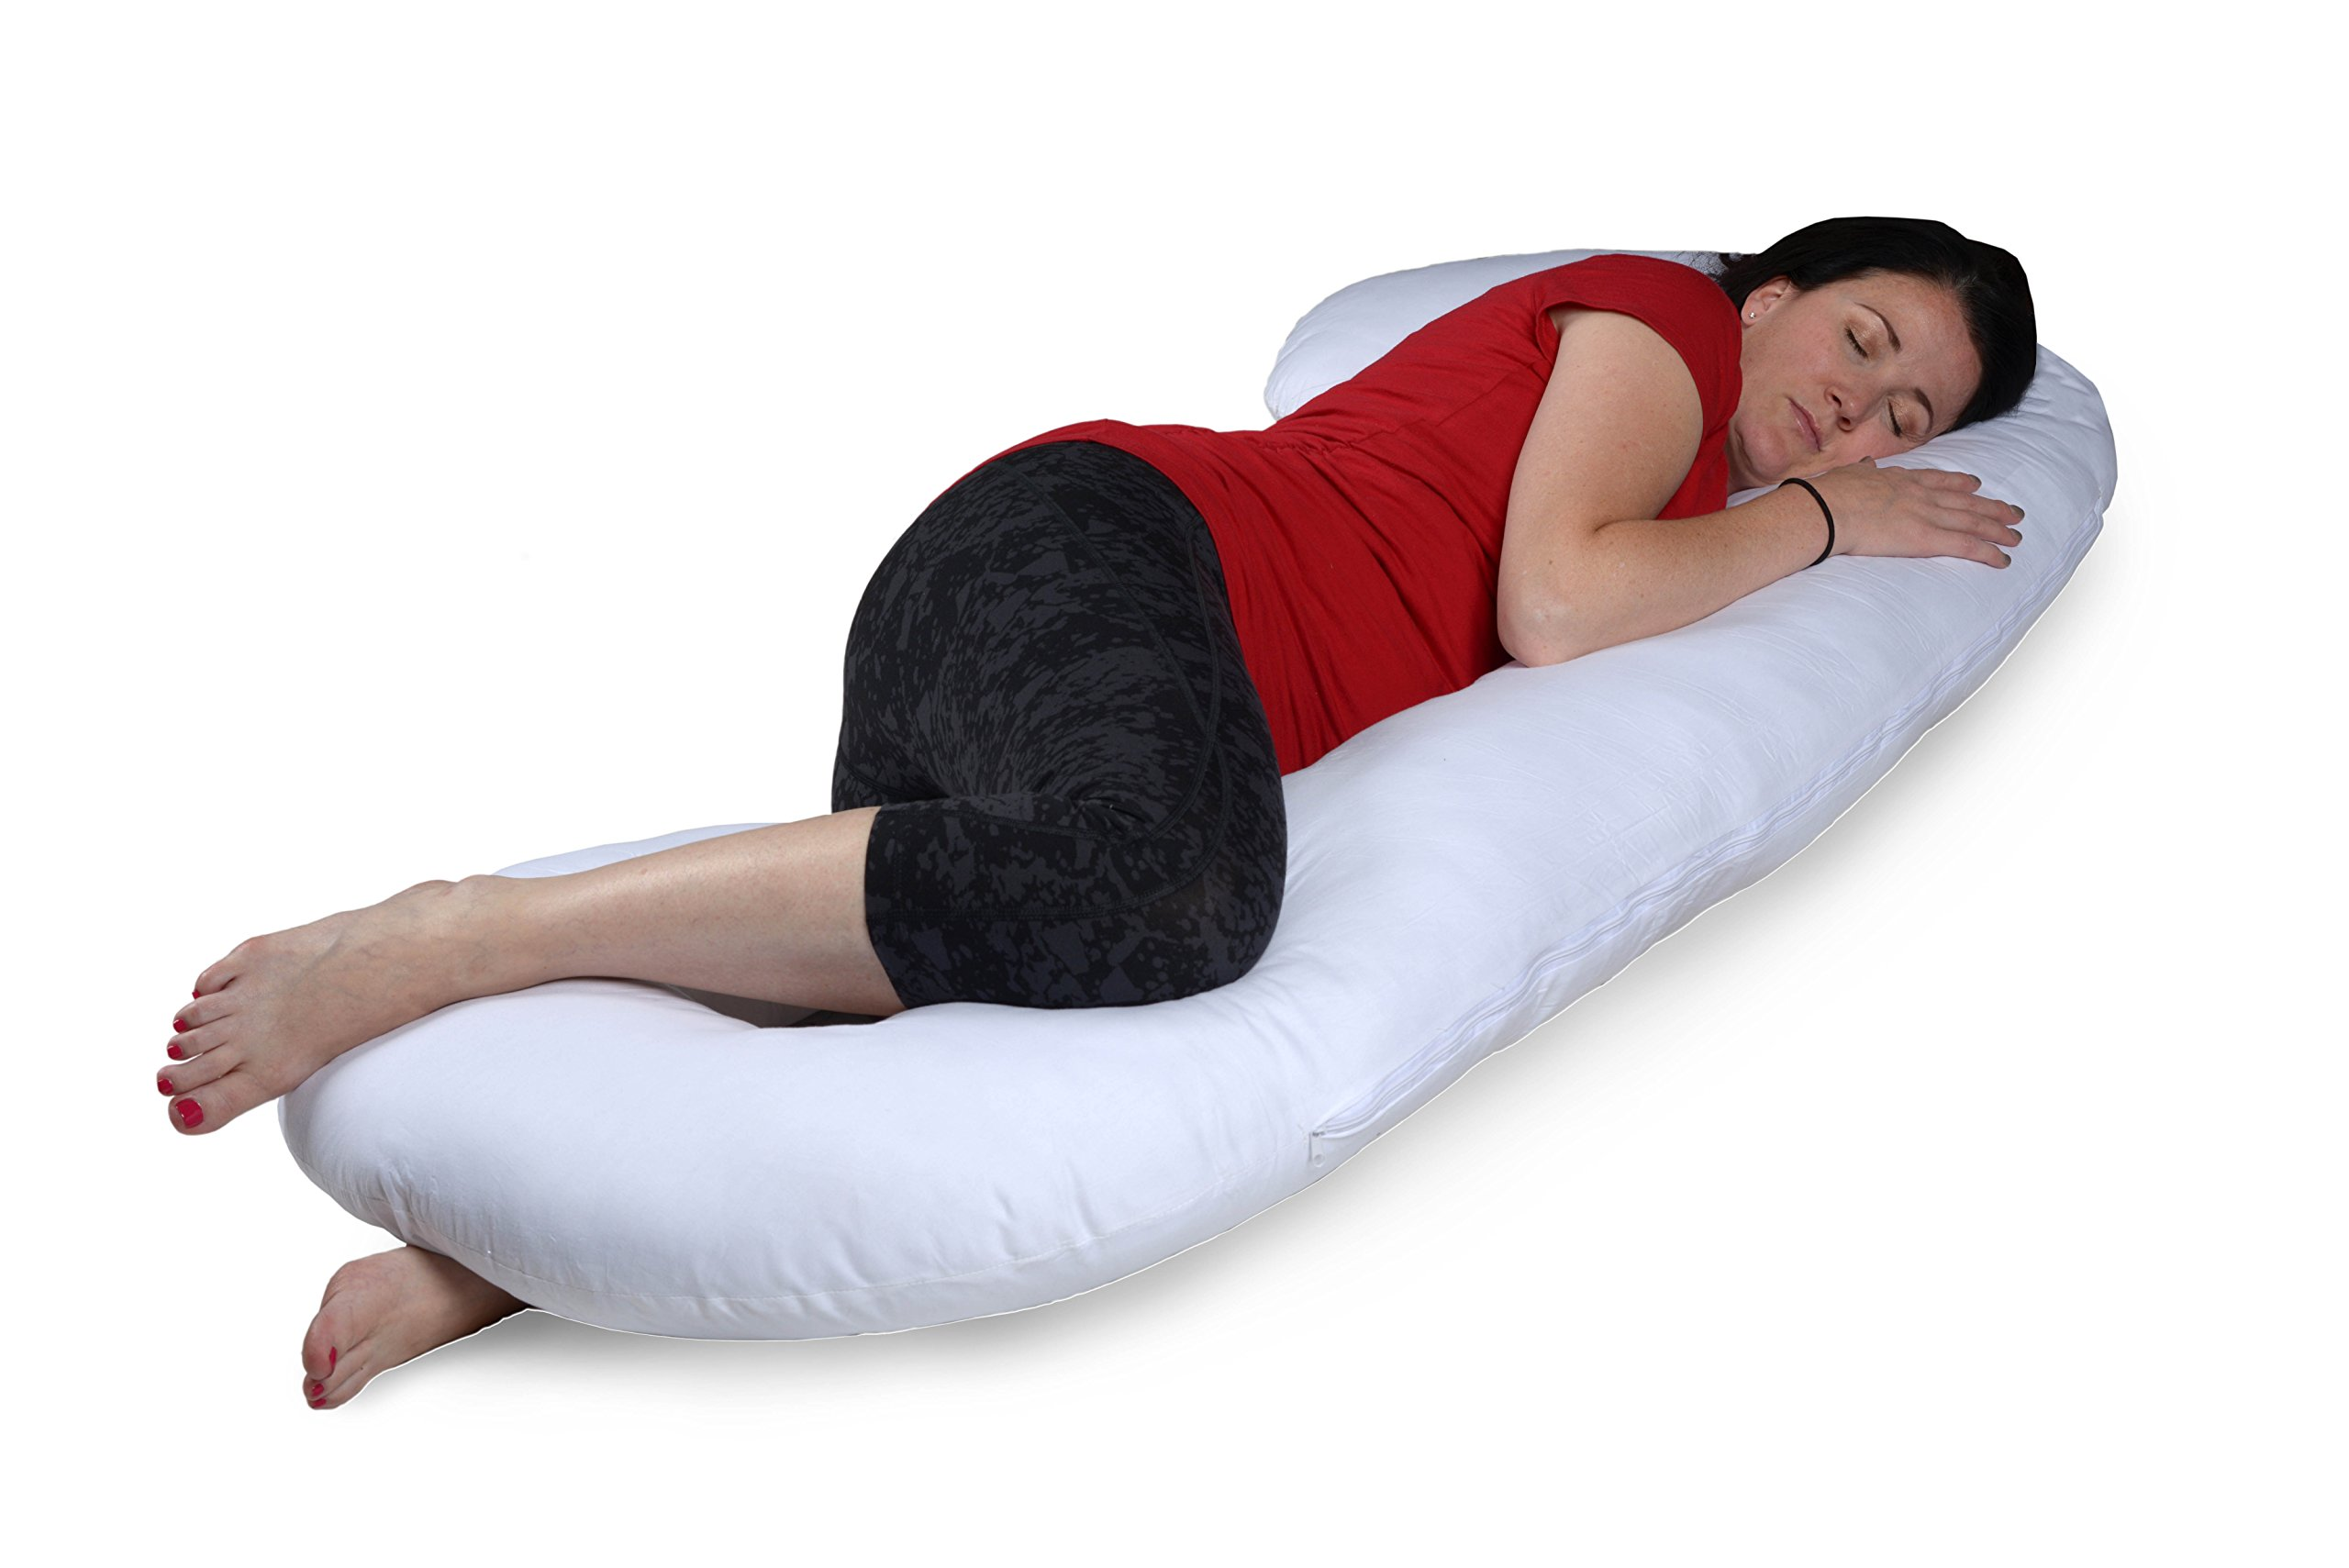 Versatile C-Shaped Full-Body Pregnancy Maternity Baby Nursing Pillow Cushion with Zippered Washable Cover Offering Belly, Arm, and Back Support While Lessening Pain and Discomfort